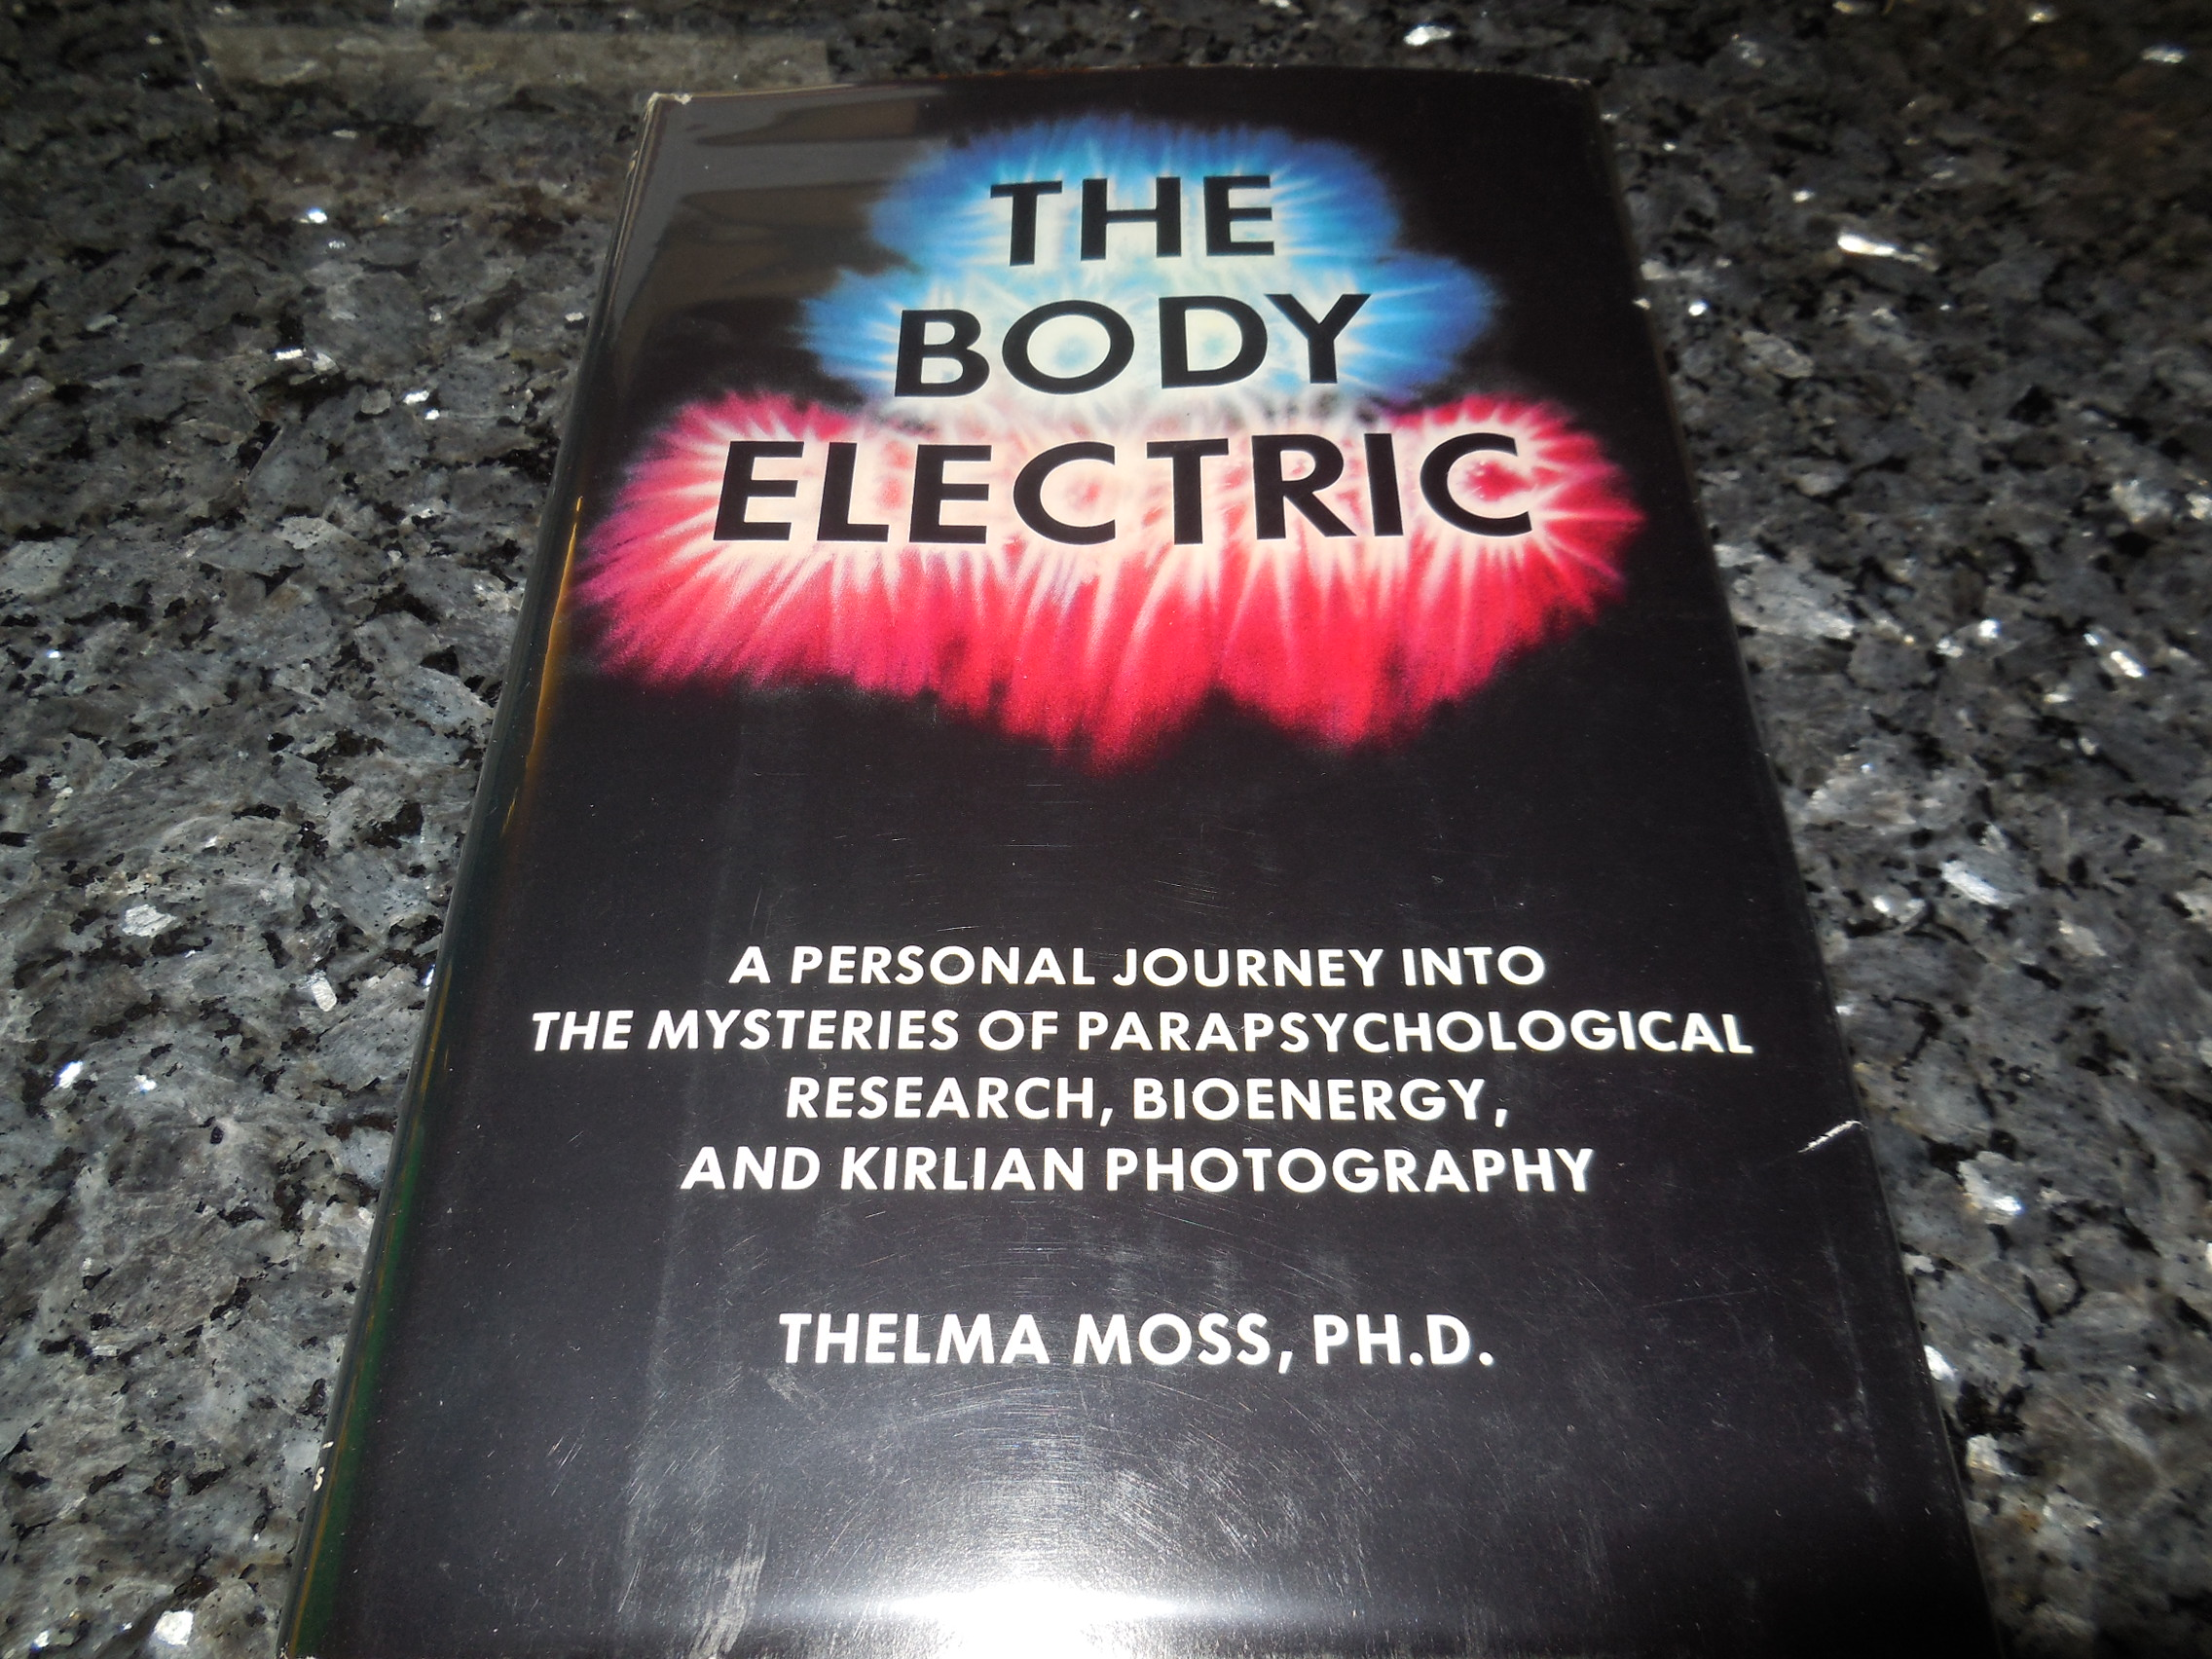 Image for The Body Electric: A Personal Journey into the Mysteries of Parapsychological Research, Bioenergy and Kirlian Photography